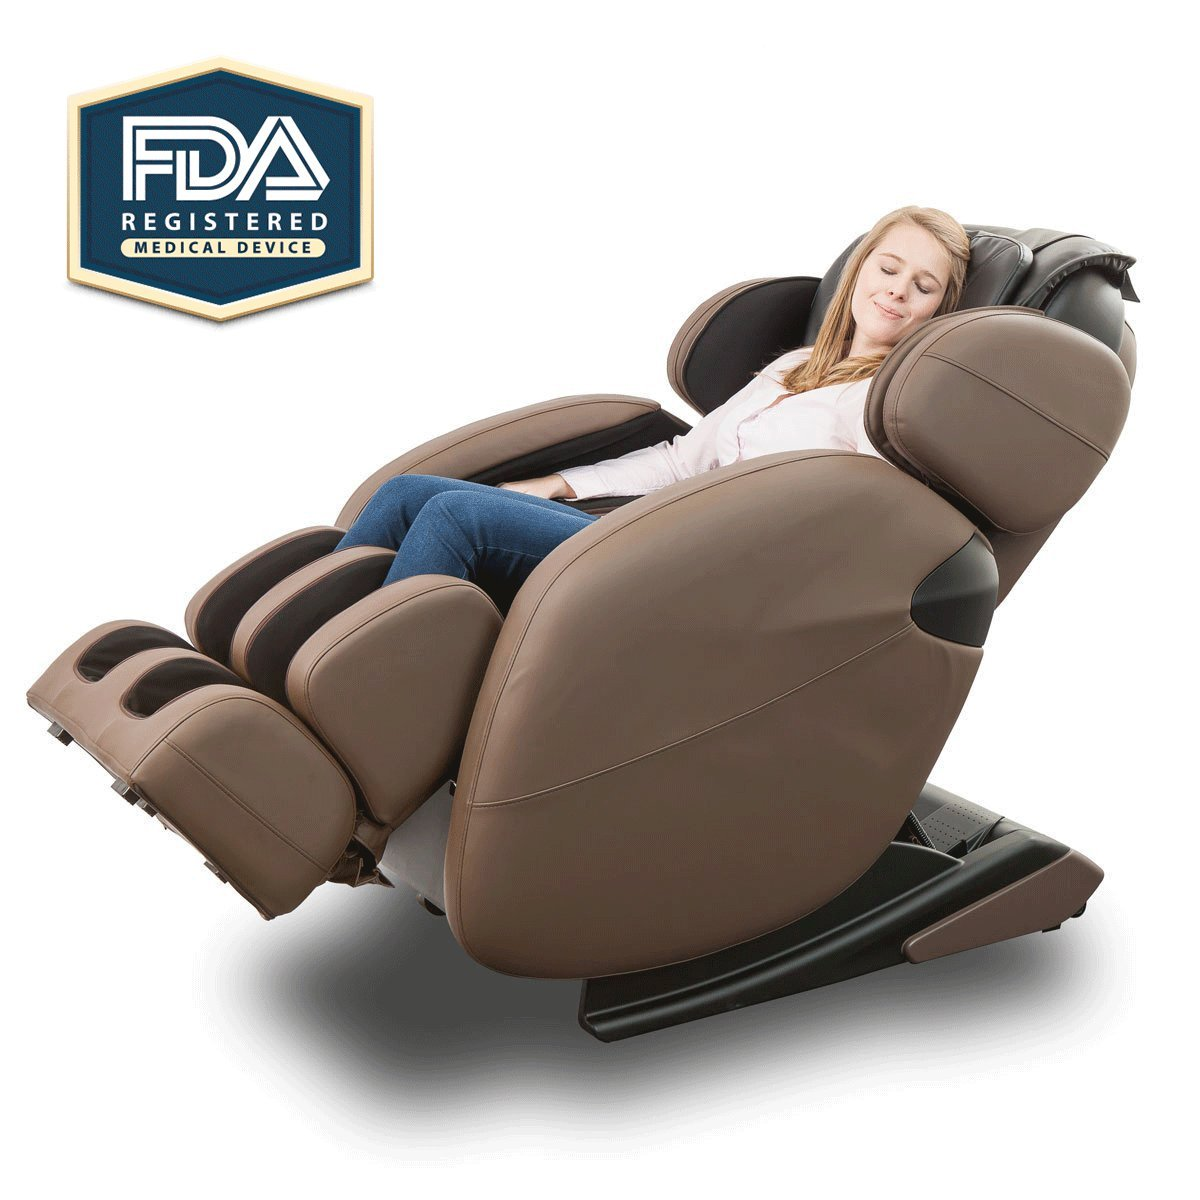 Top 5 best massage chairs reviews 2016 2017 on flipboard for Popular massage chair